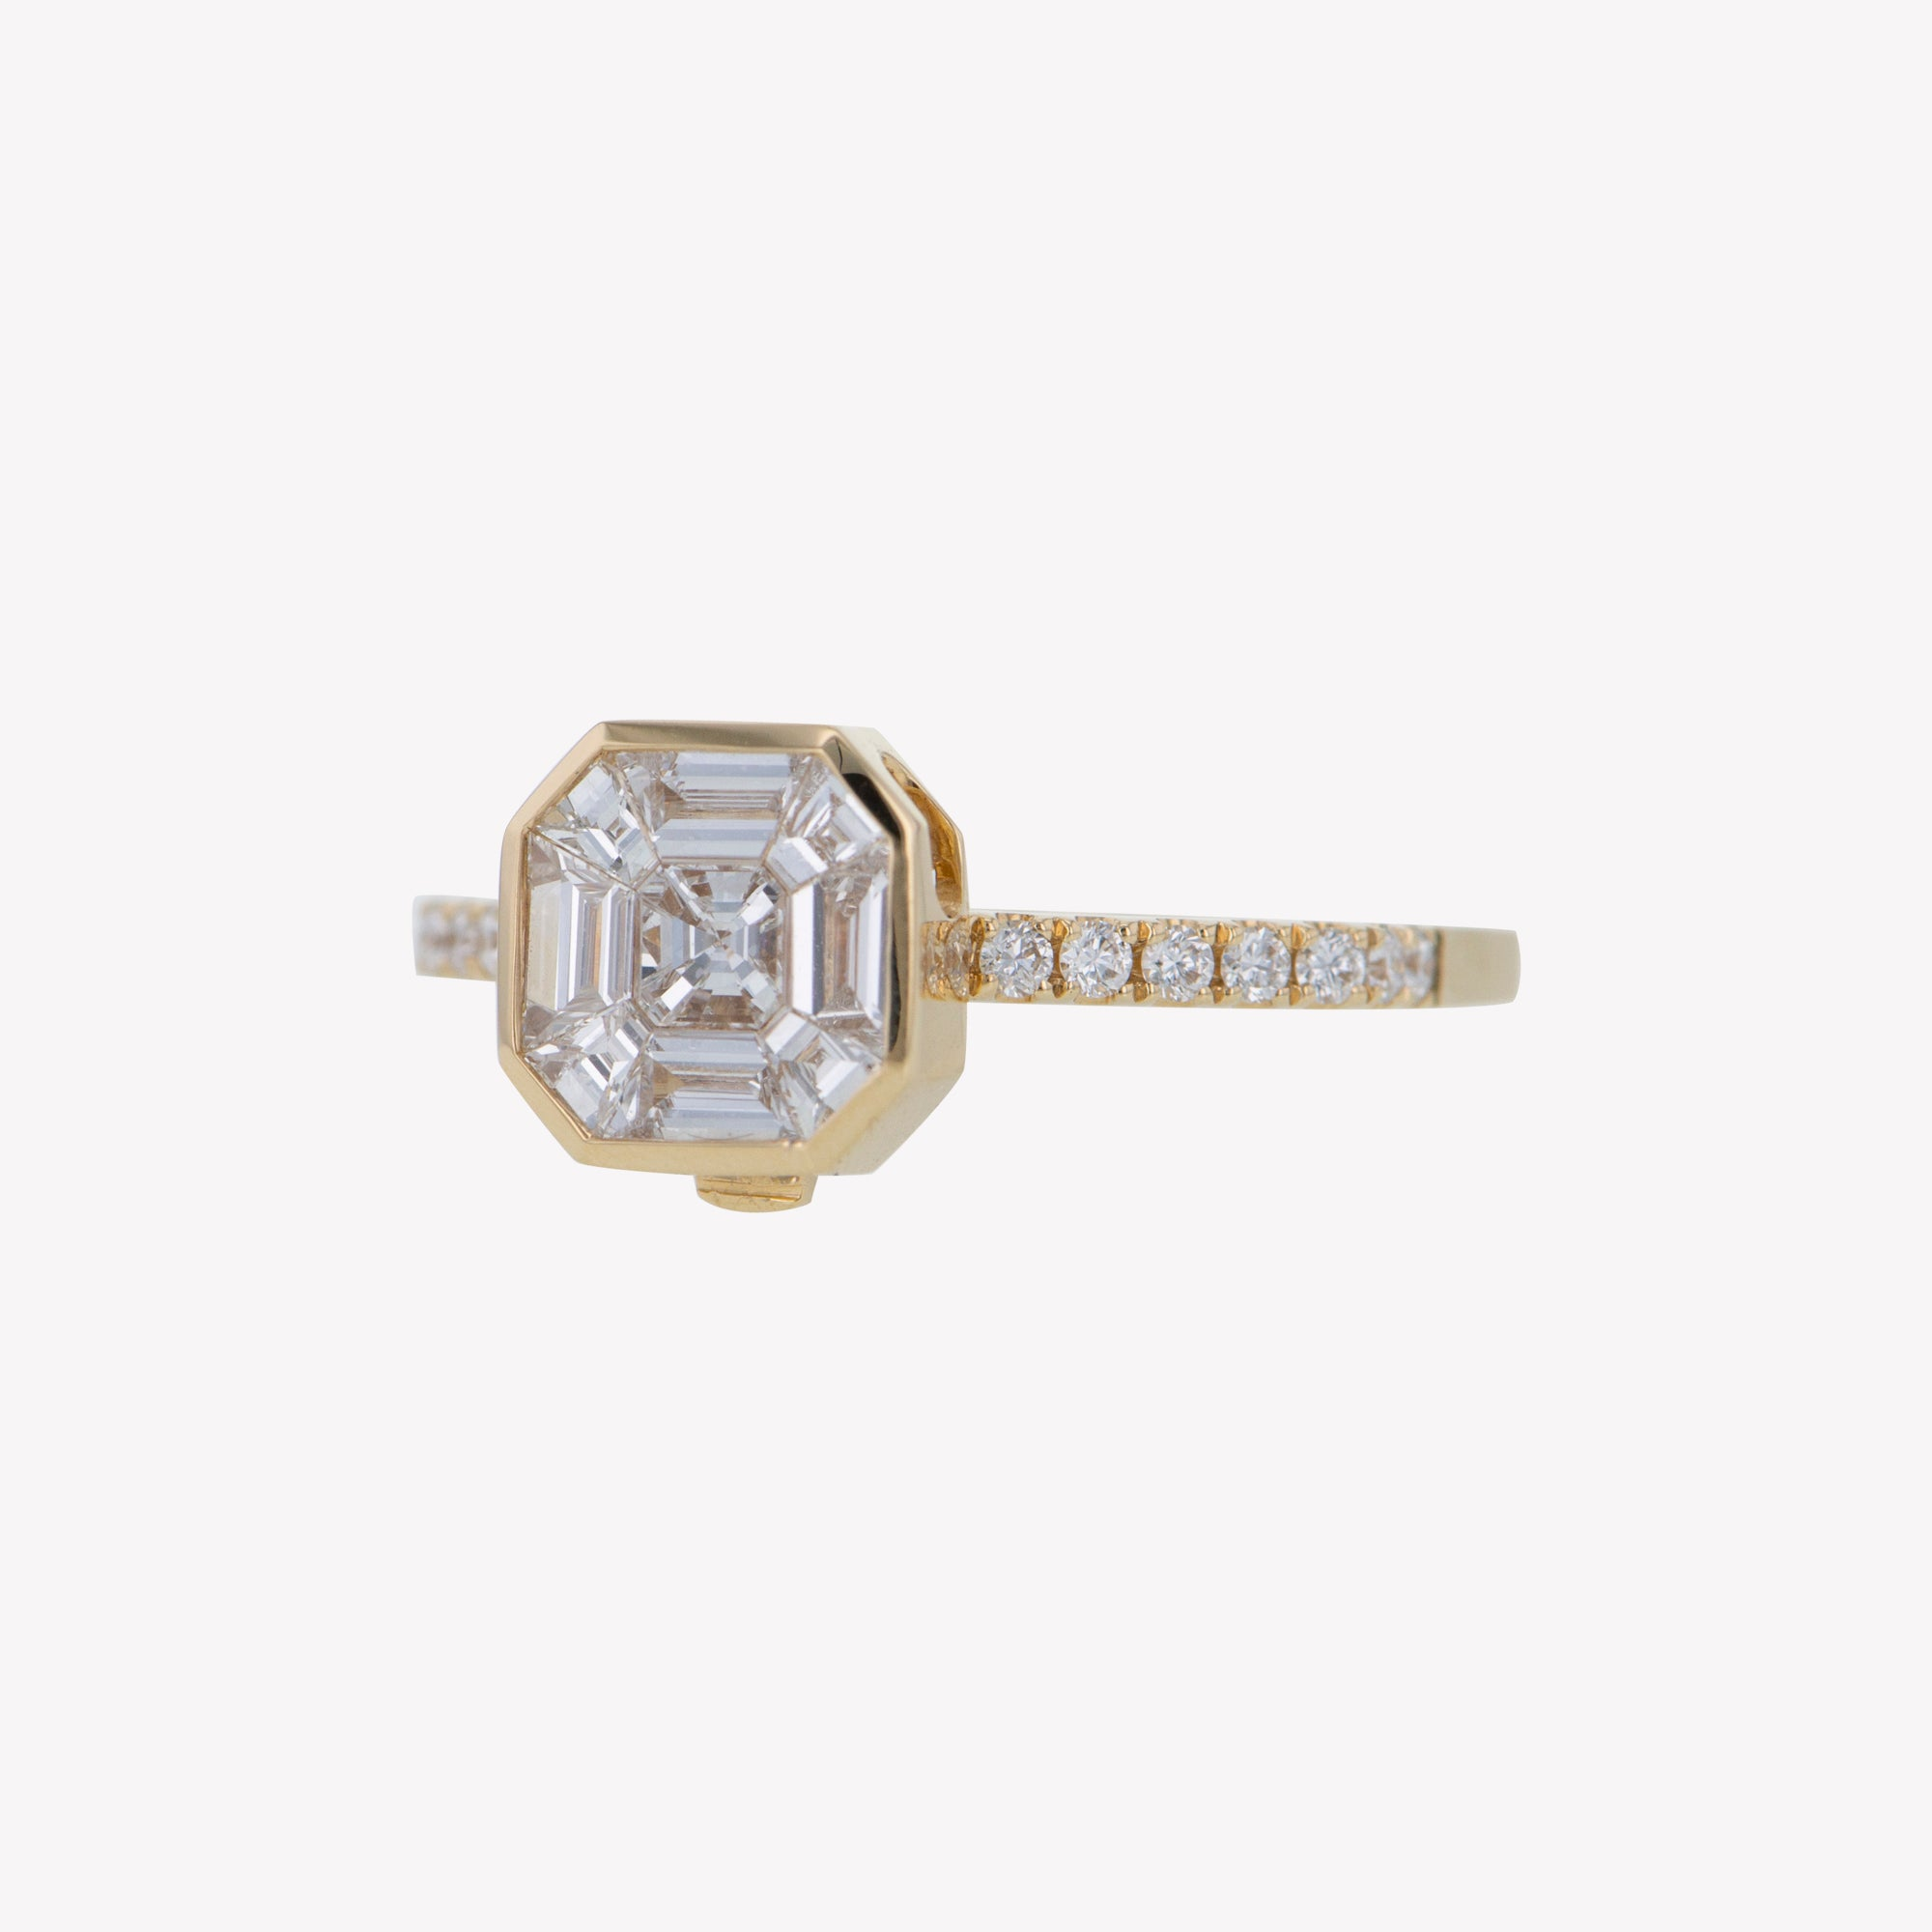 Detachable Yellow Gold Asscher Head with Octa Diamond Band